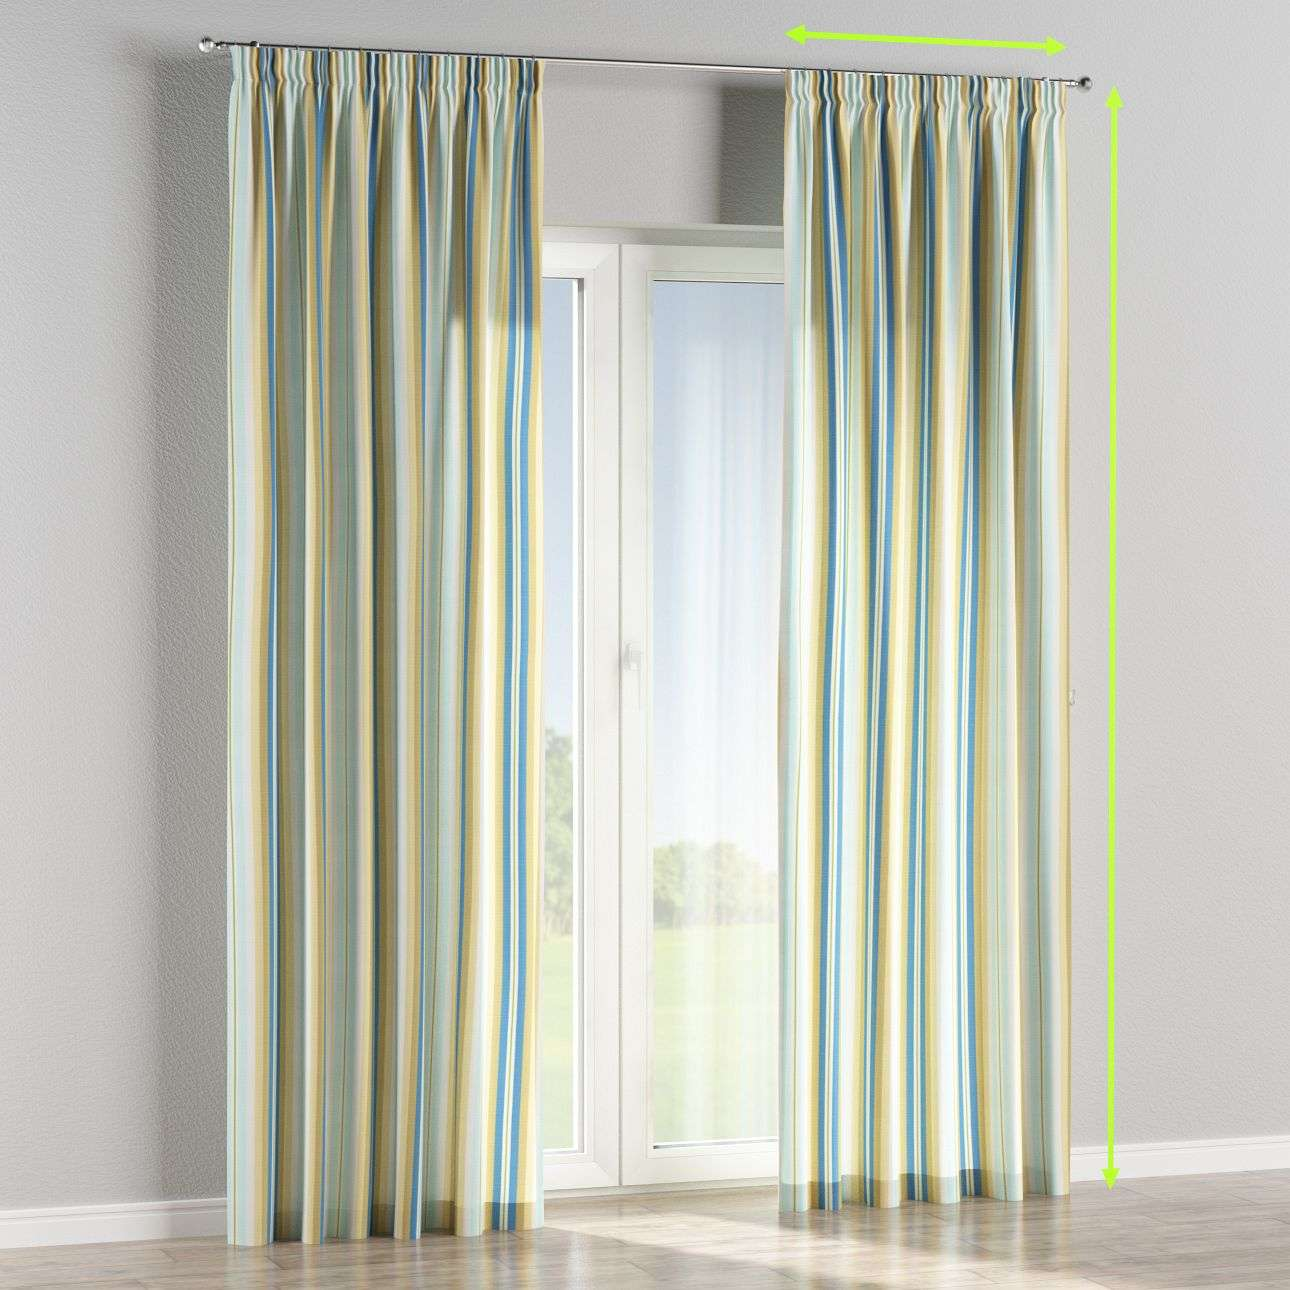 Pencil pleat curtains in collection Mirella, fabric: 141-17